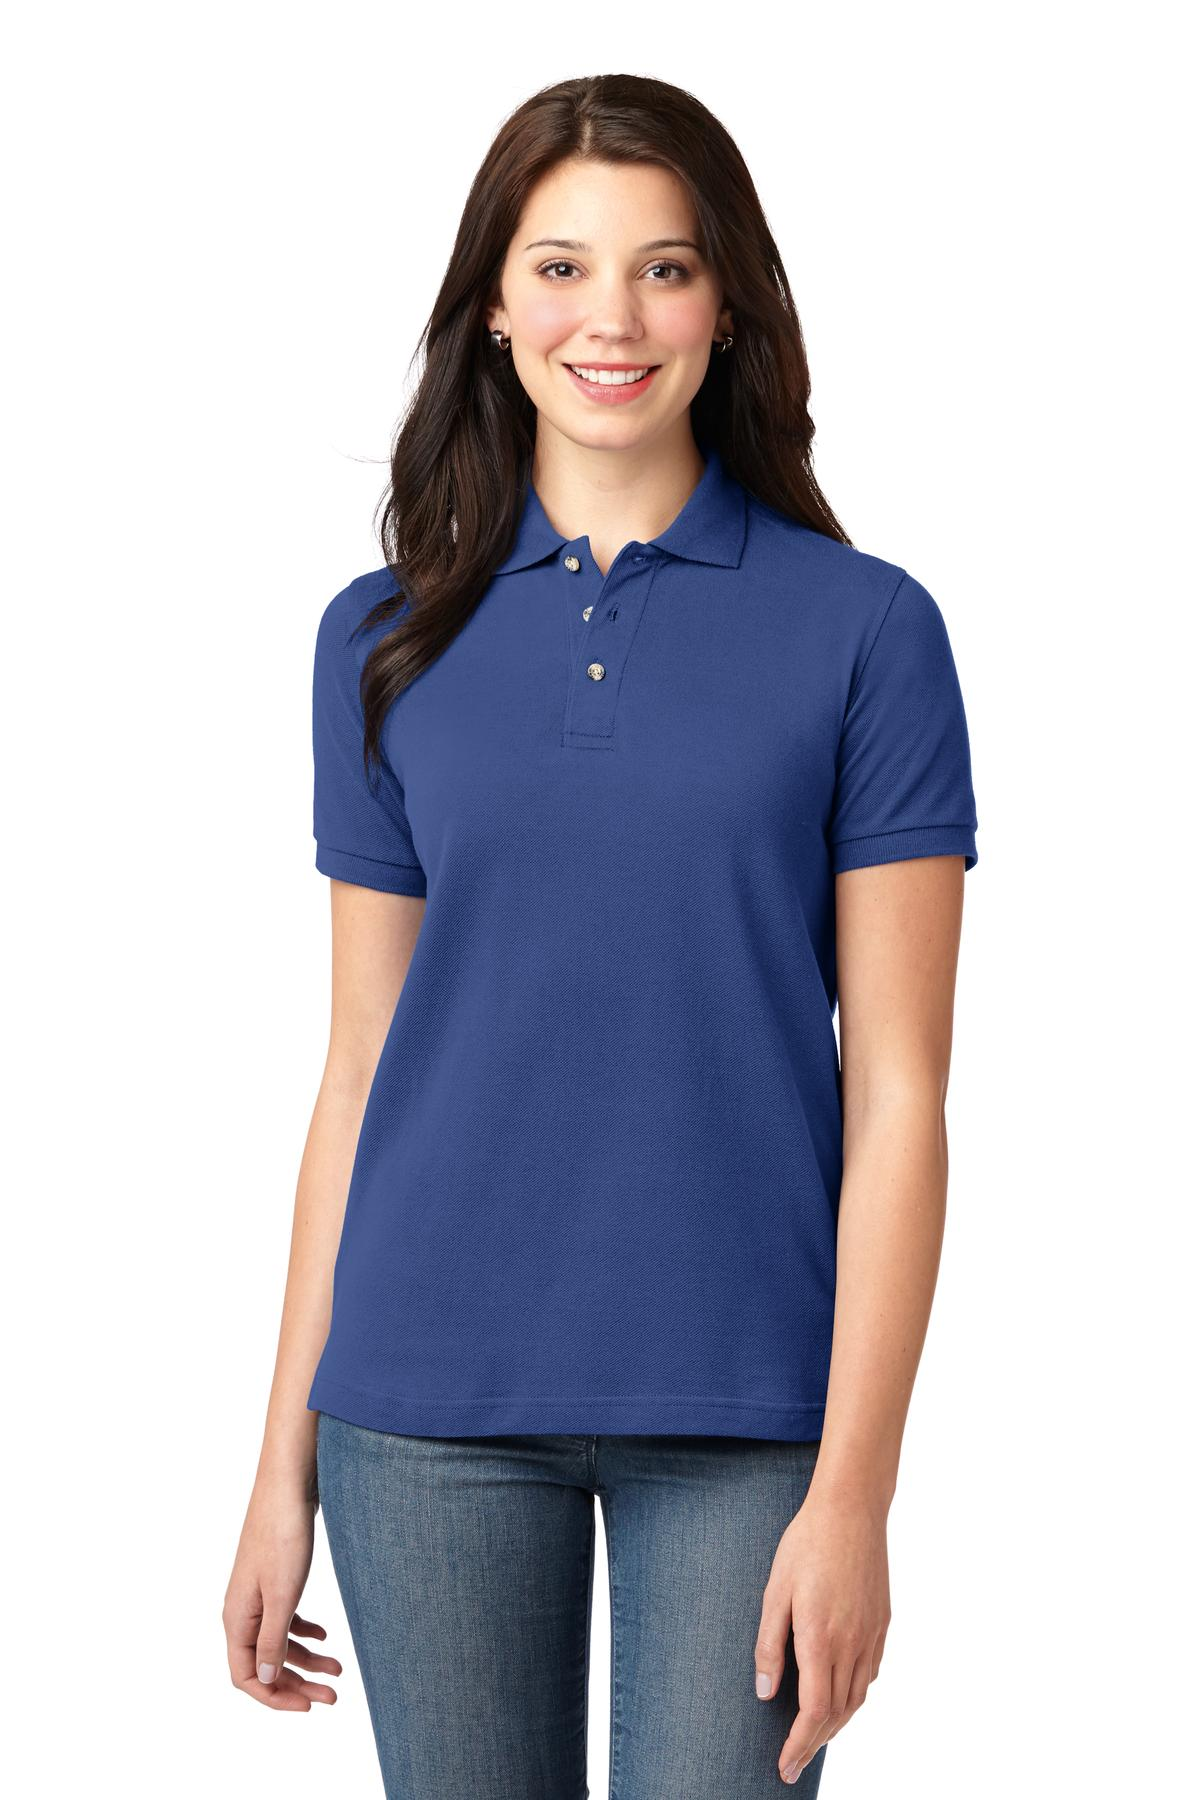 Mediterranean Blue Port Authority Ladies Silk Touch Polo.